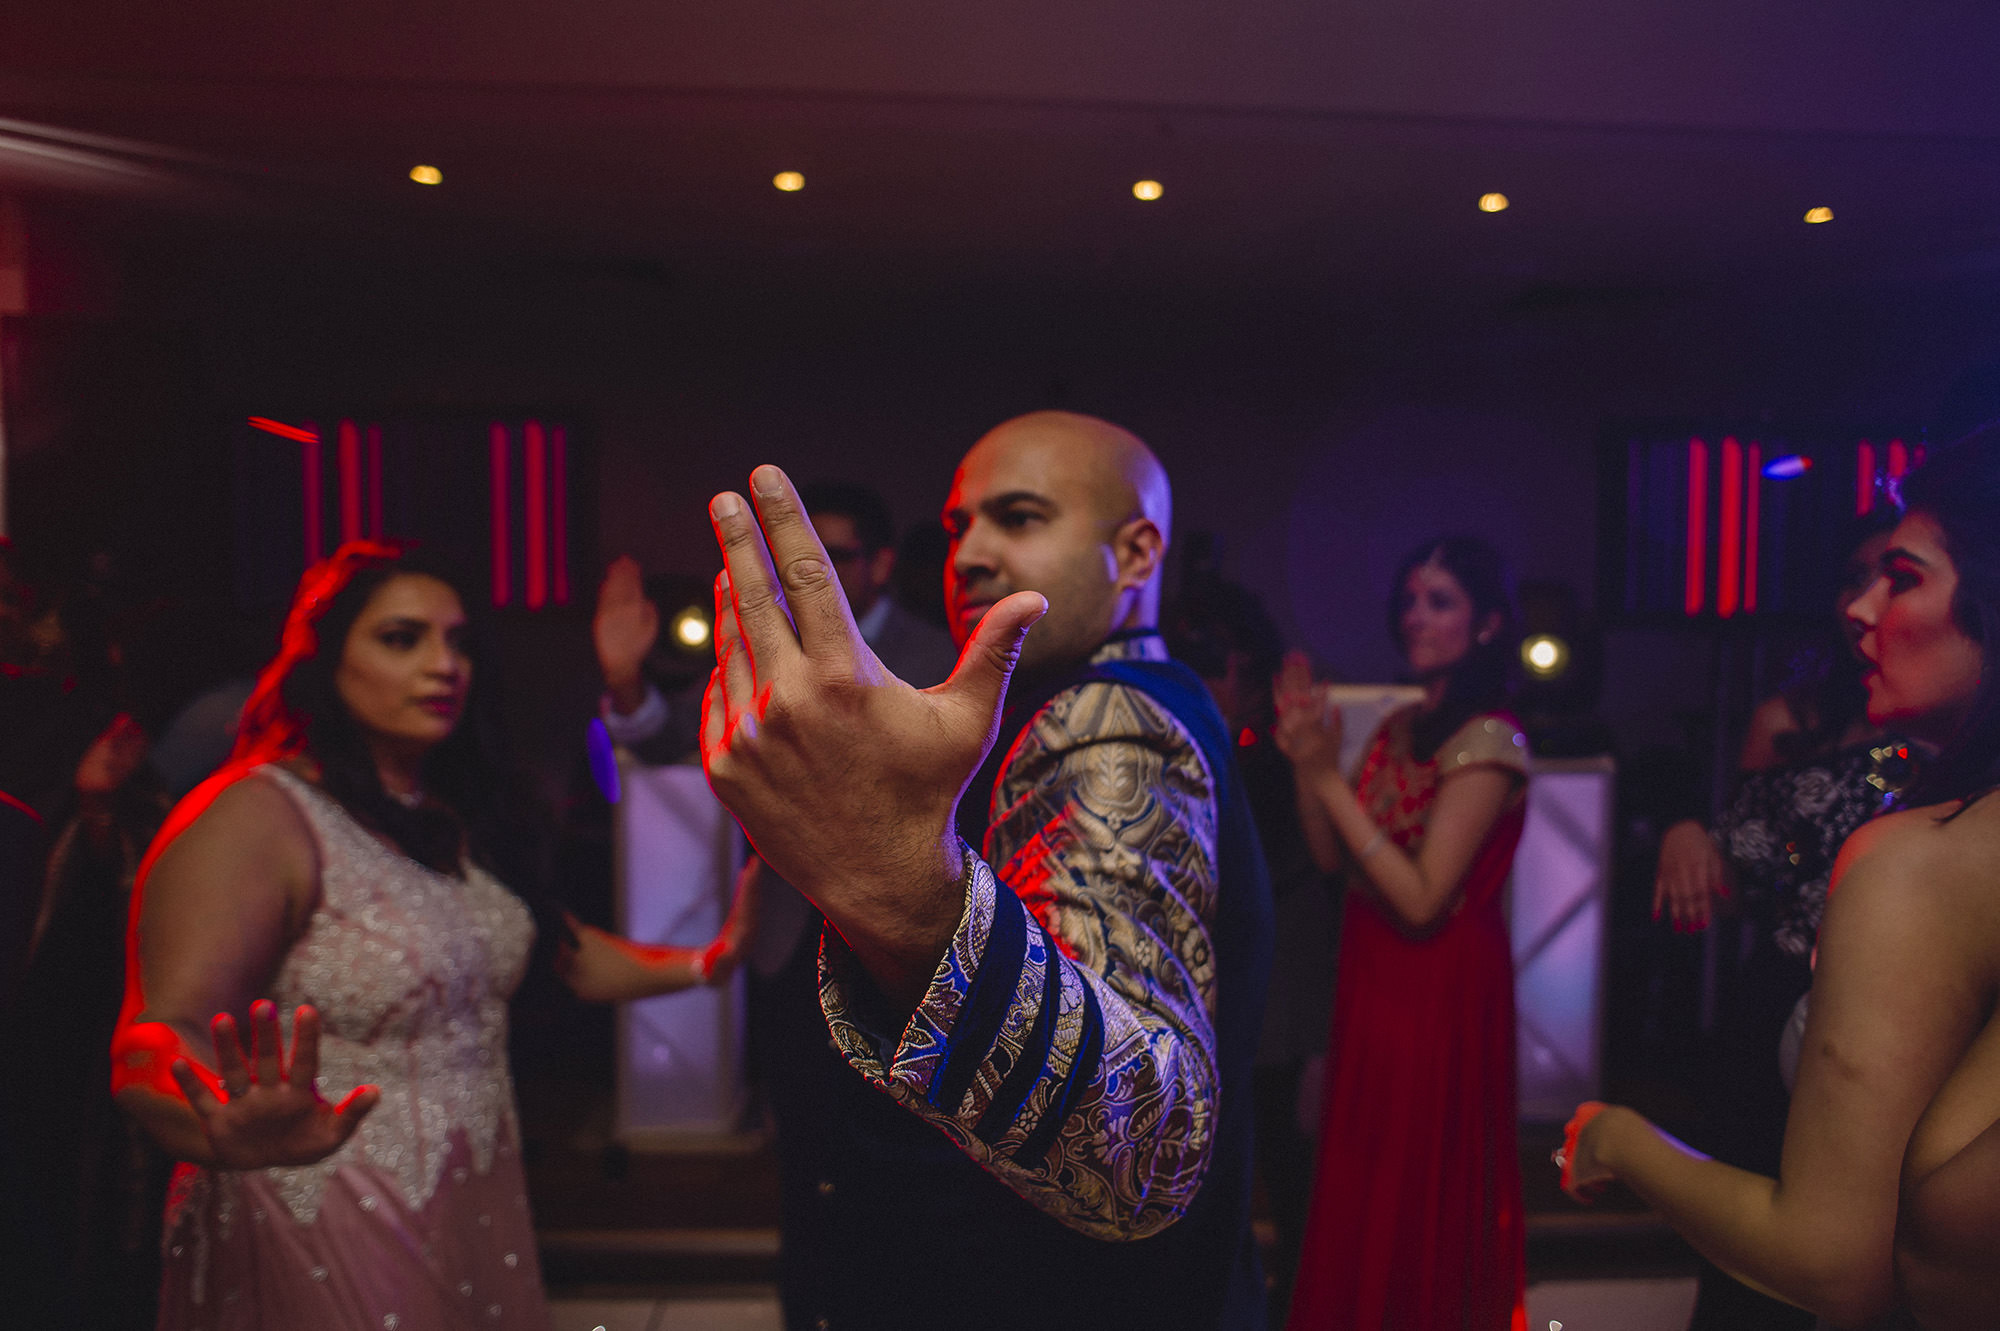 groom dancing with friends at his wedding reception